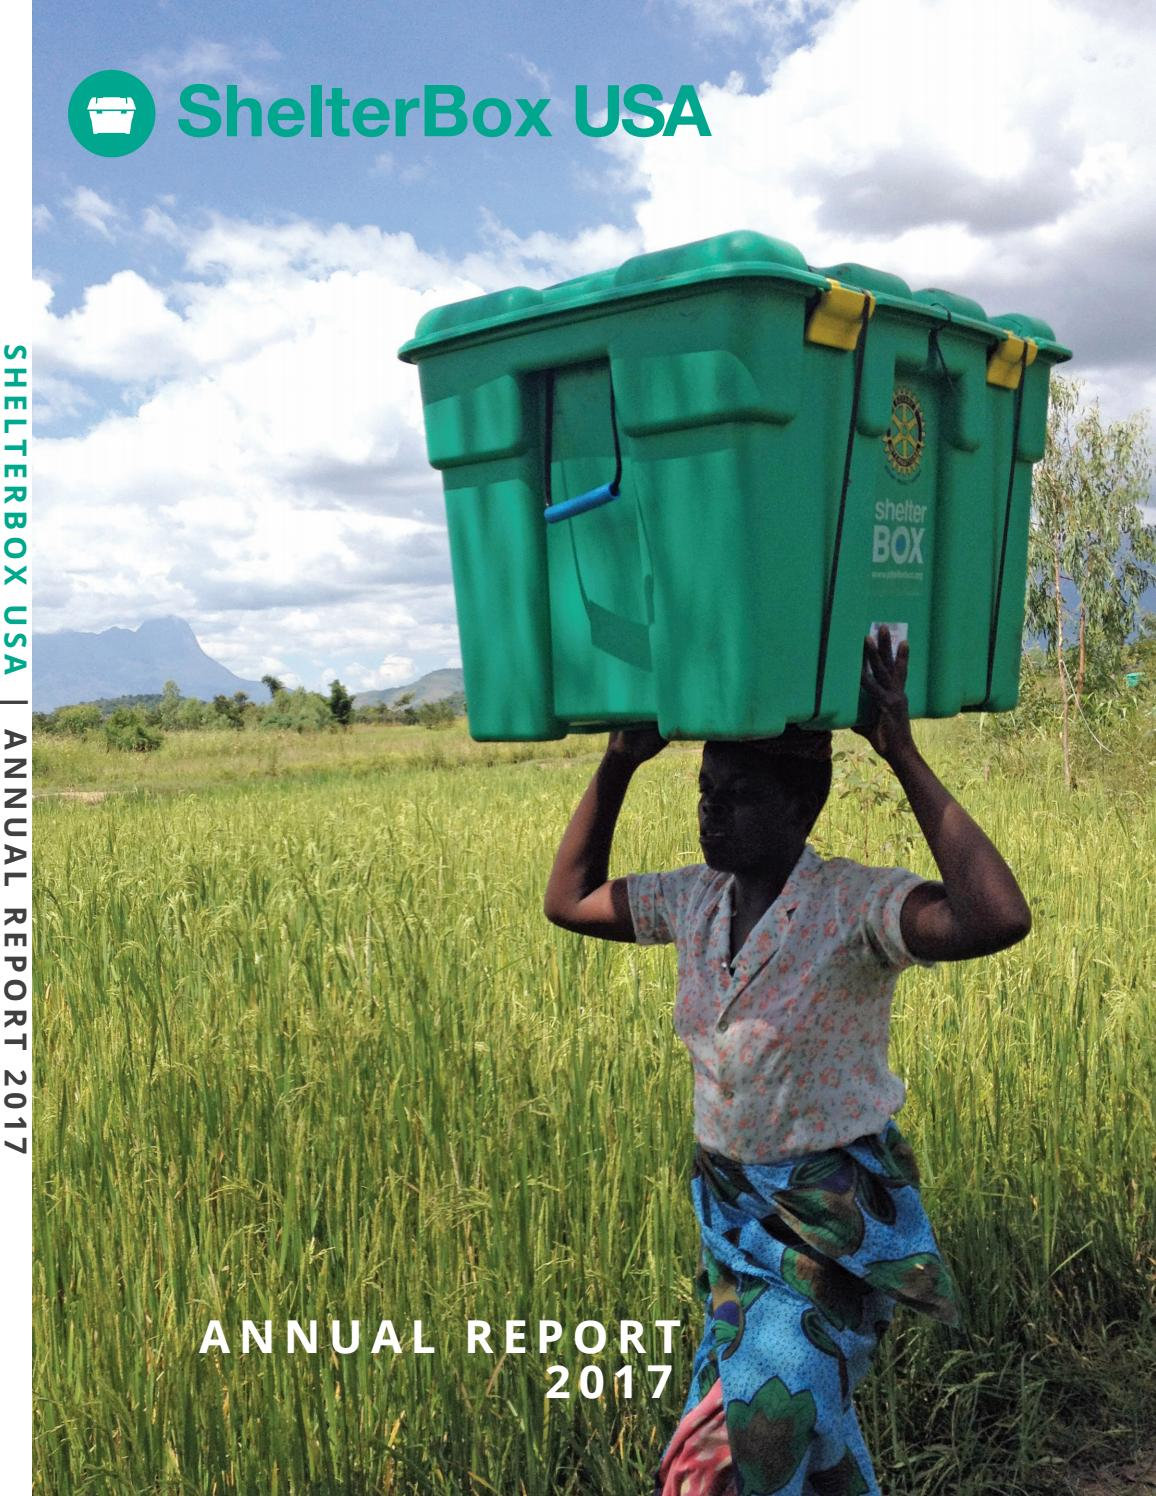 2017 Shelterbox Usa Annual Report By Shelterbox Usa Issuu